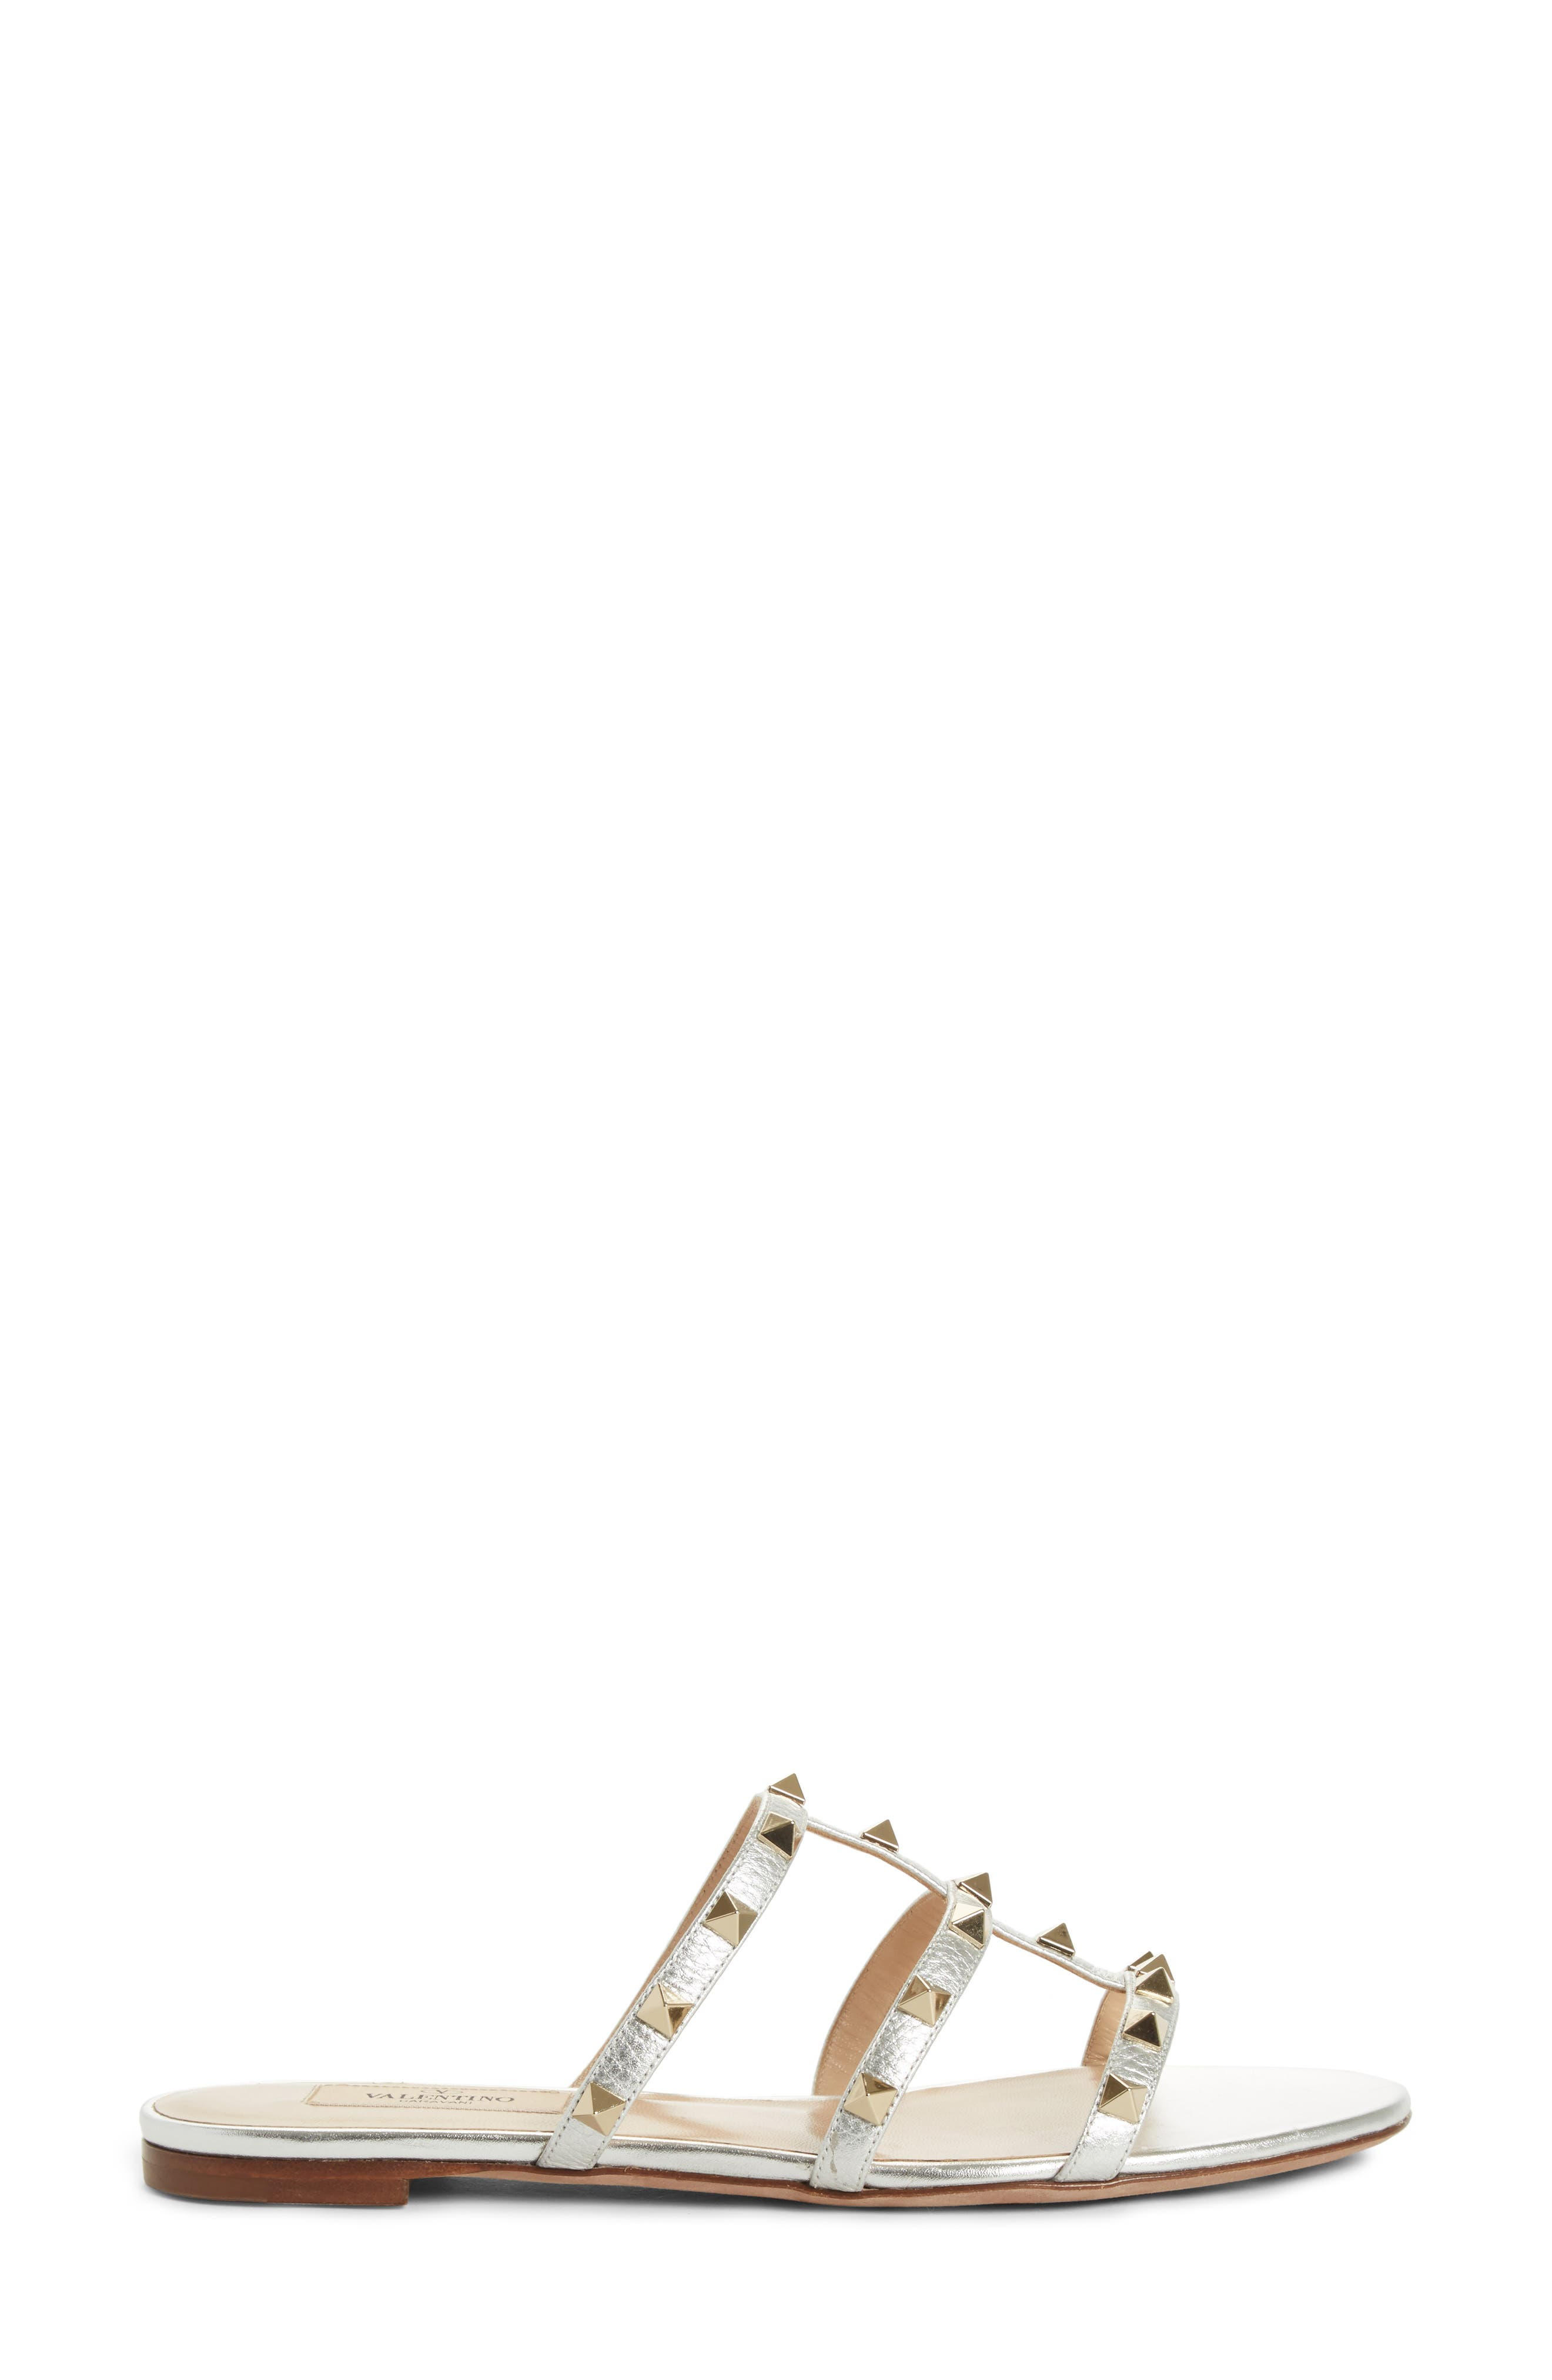 Rockstud Cage Slide Sandal,                             Alternate thumbnail 3, color,                             METALLIC SILVER